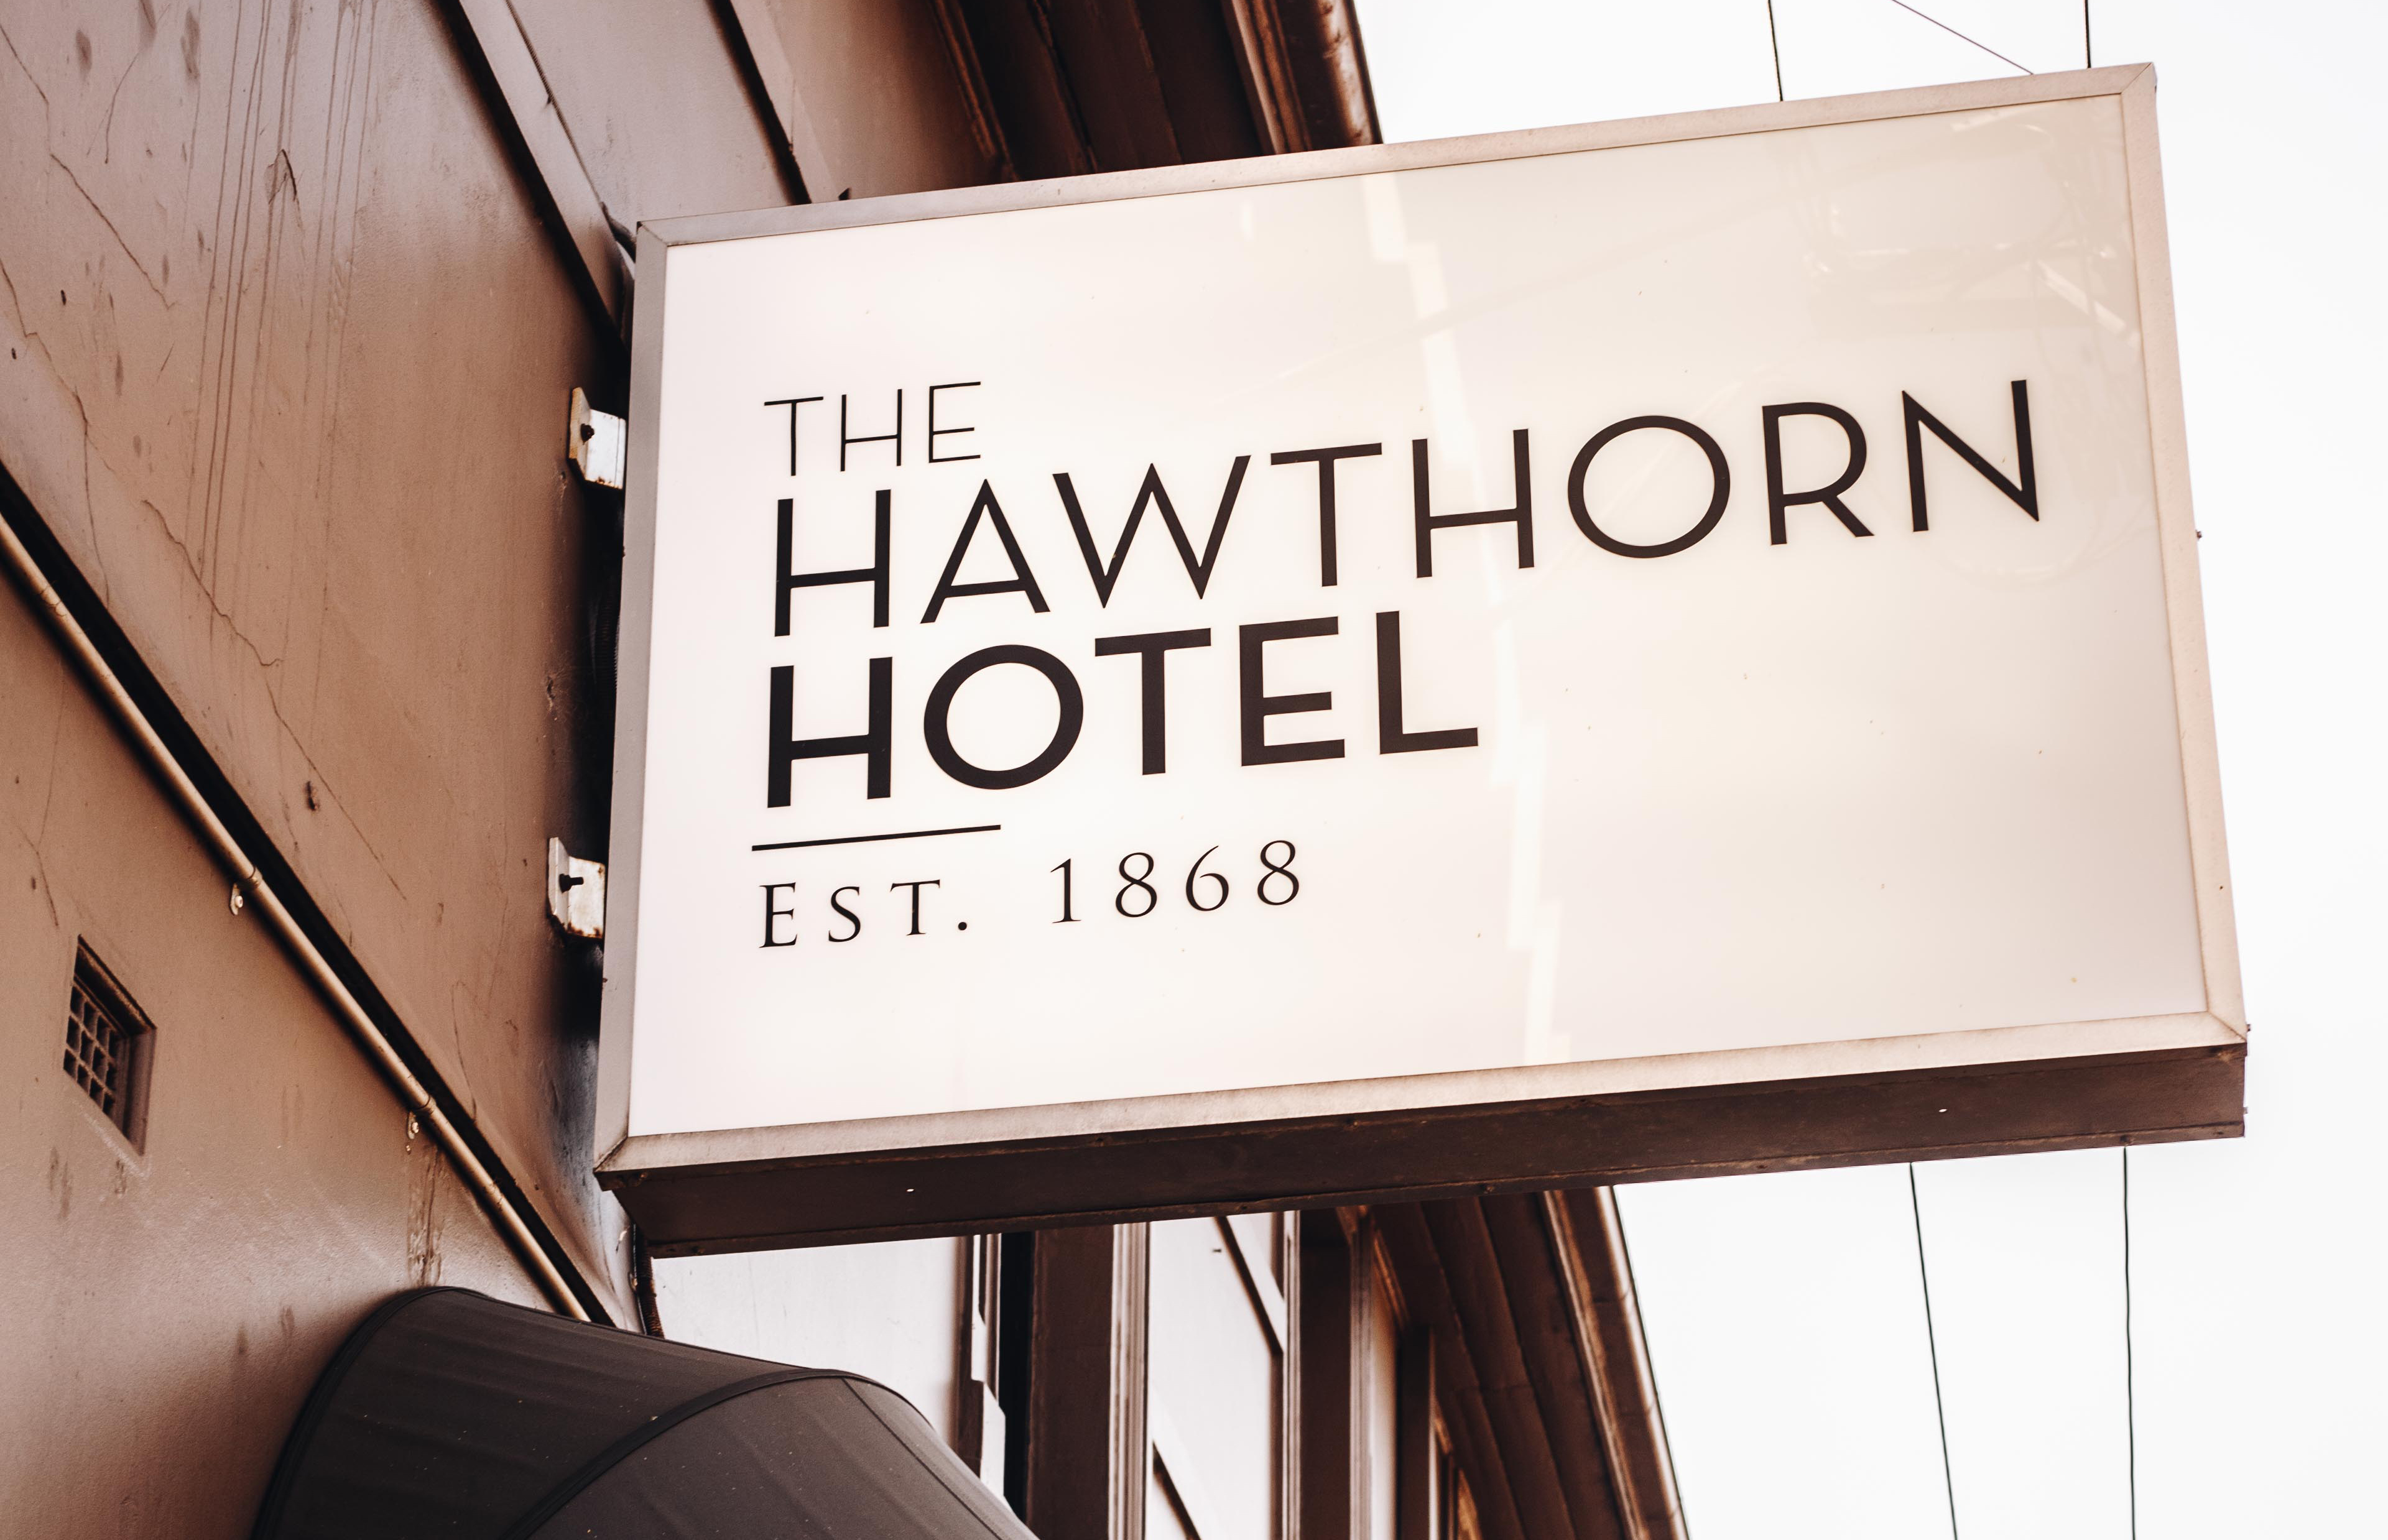 The Hawthorn Hotel is coming back in 2021